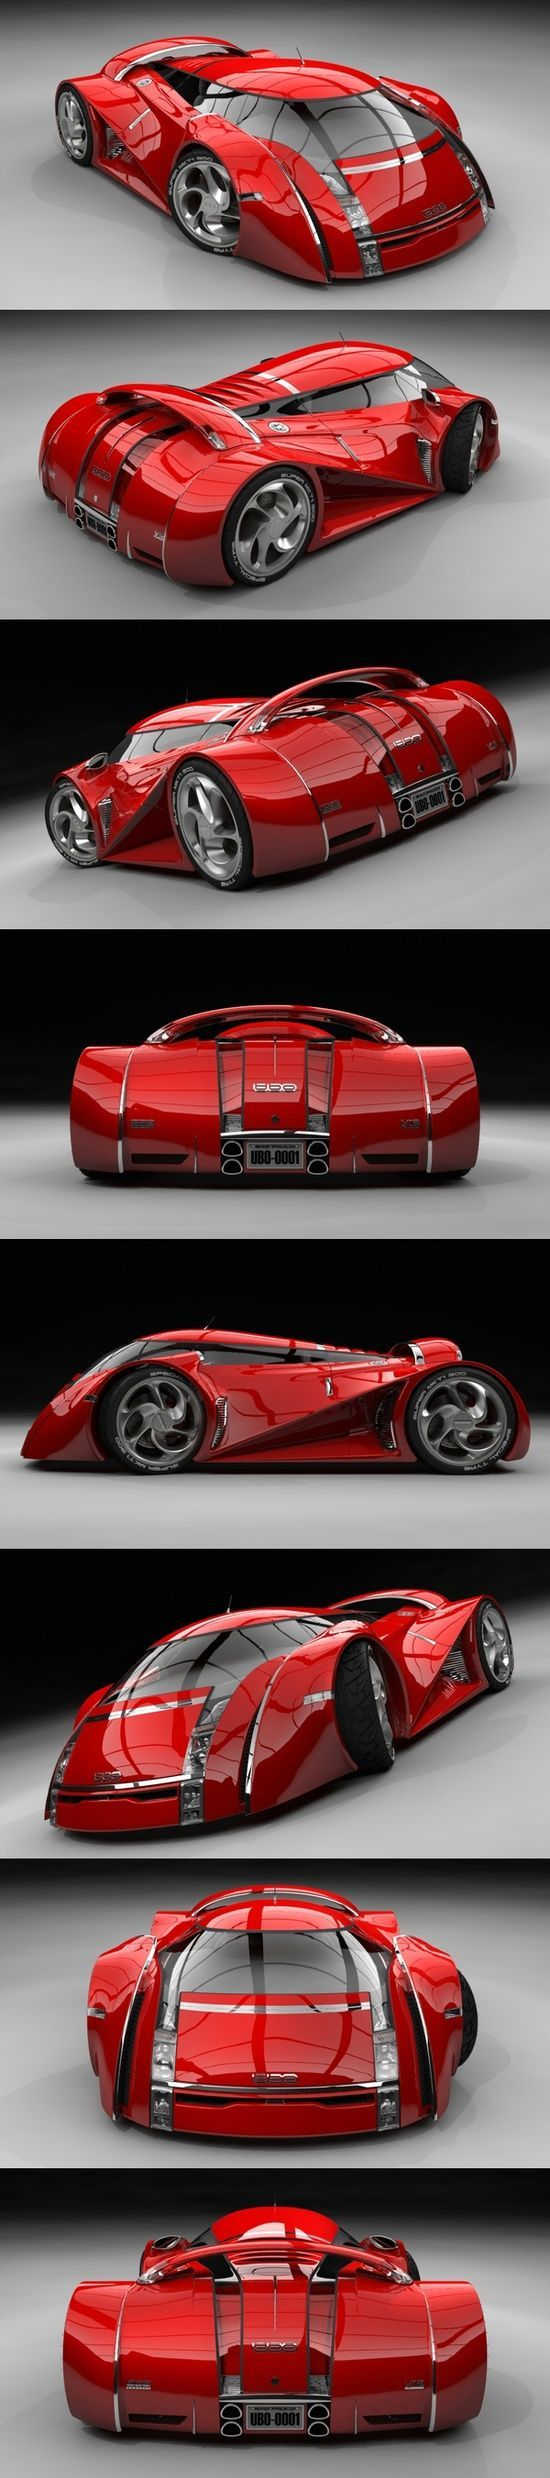 Concept Car Rouge / UBO. Now thìs is a real concept car: something radical… - https://www.luxury.guugles.com/concept-car-rouge-ubo-now-this-is-a-real-concept-car-something-radical/